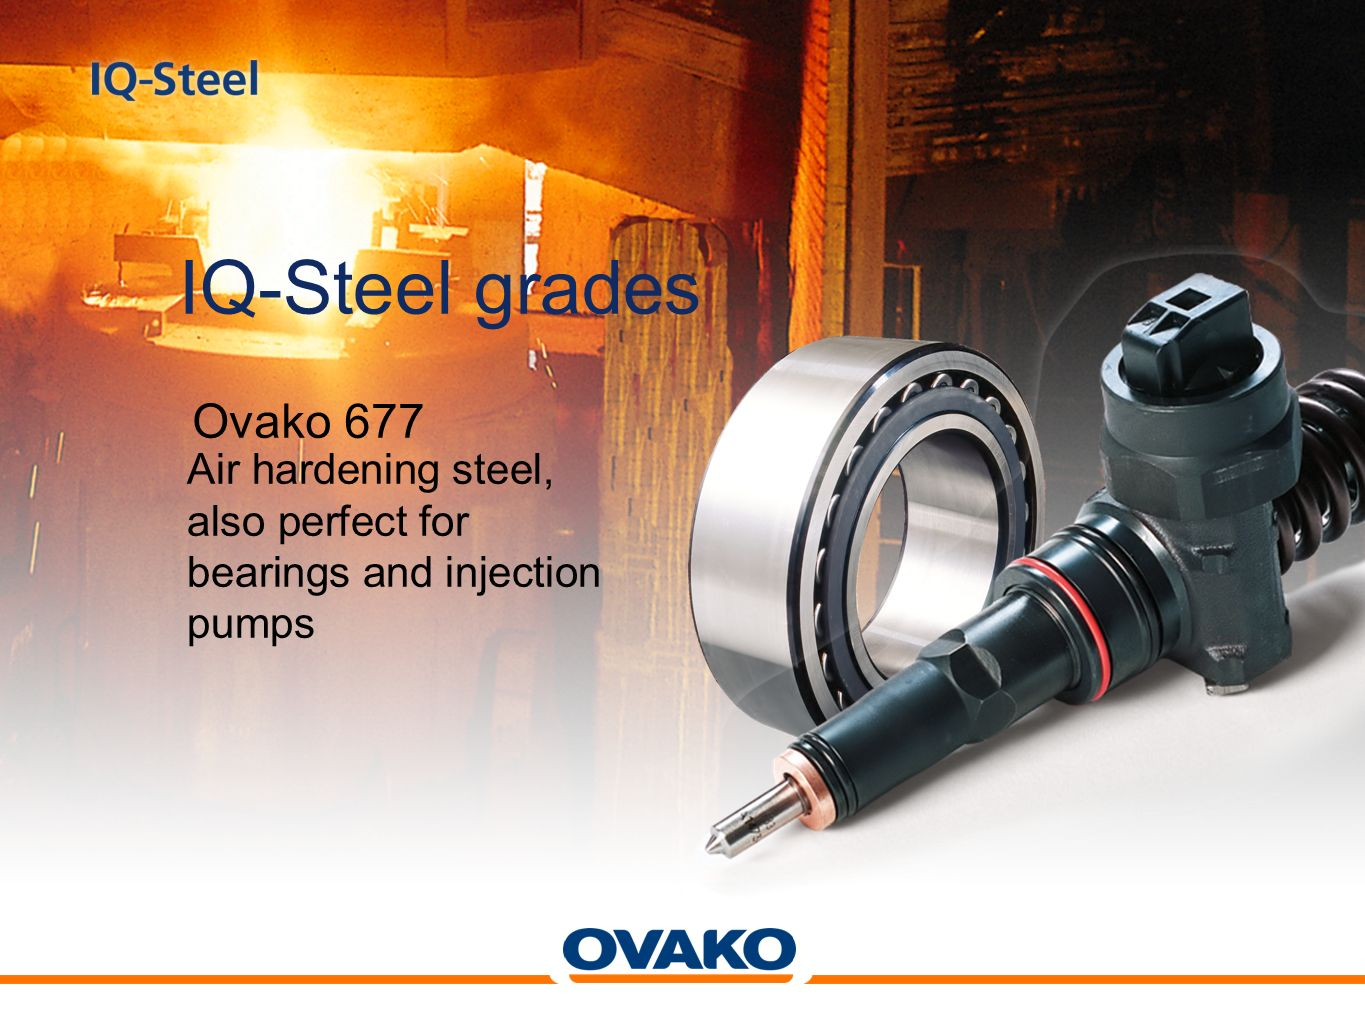 Ovako 677 Air hardening steel, also perfect for bearings and injection pumps